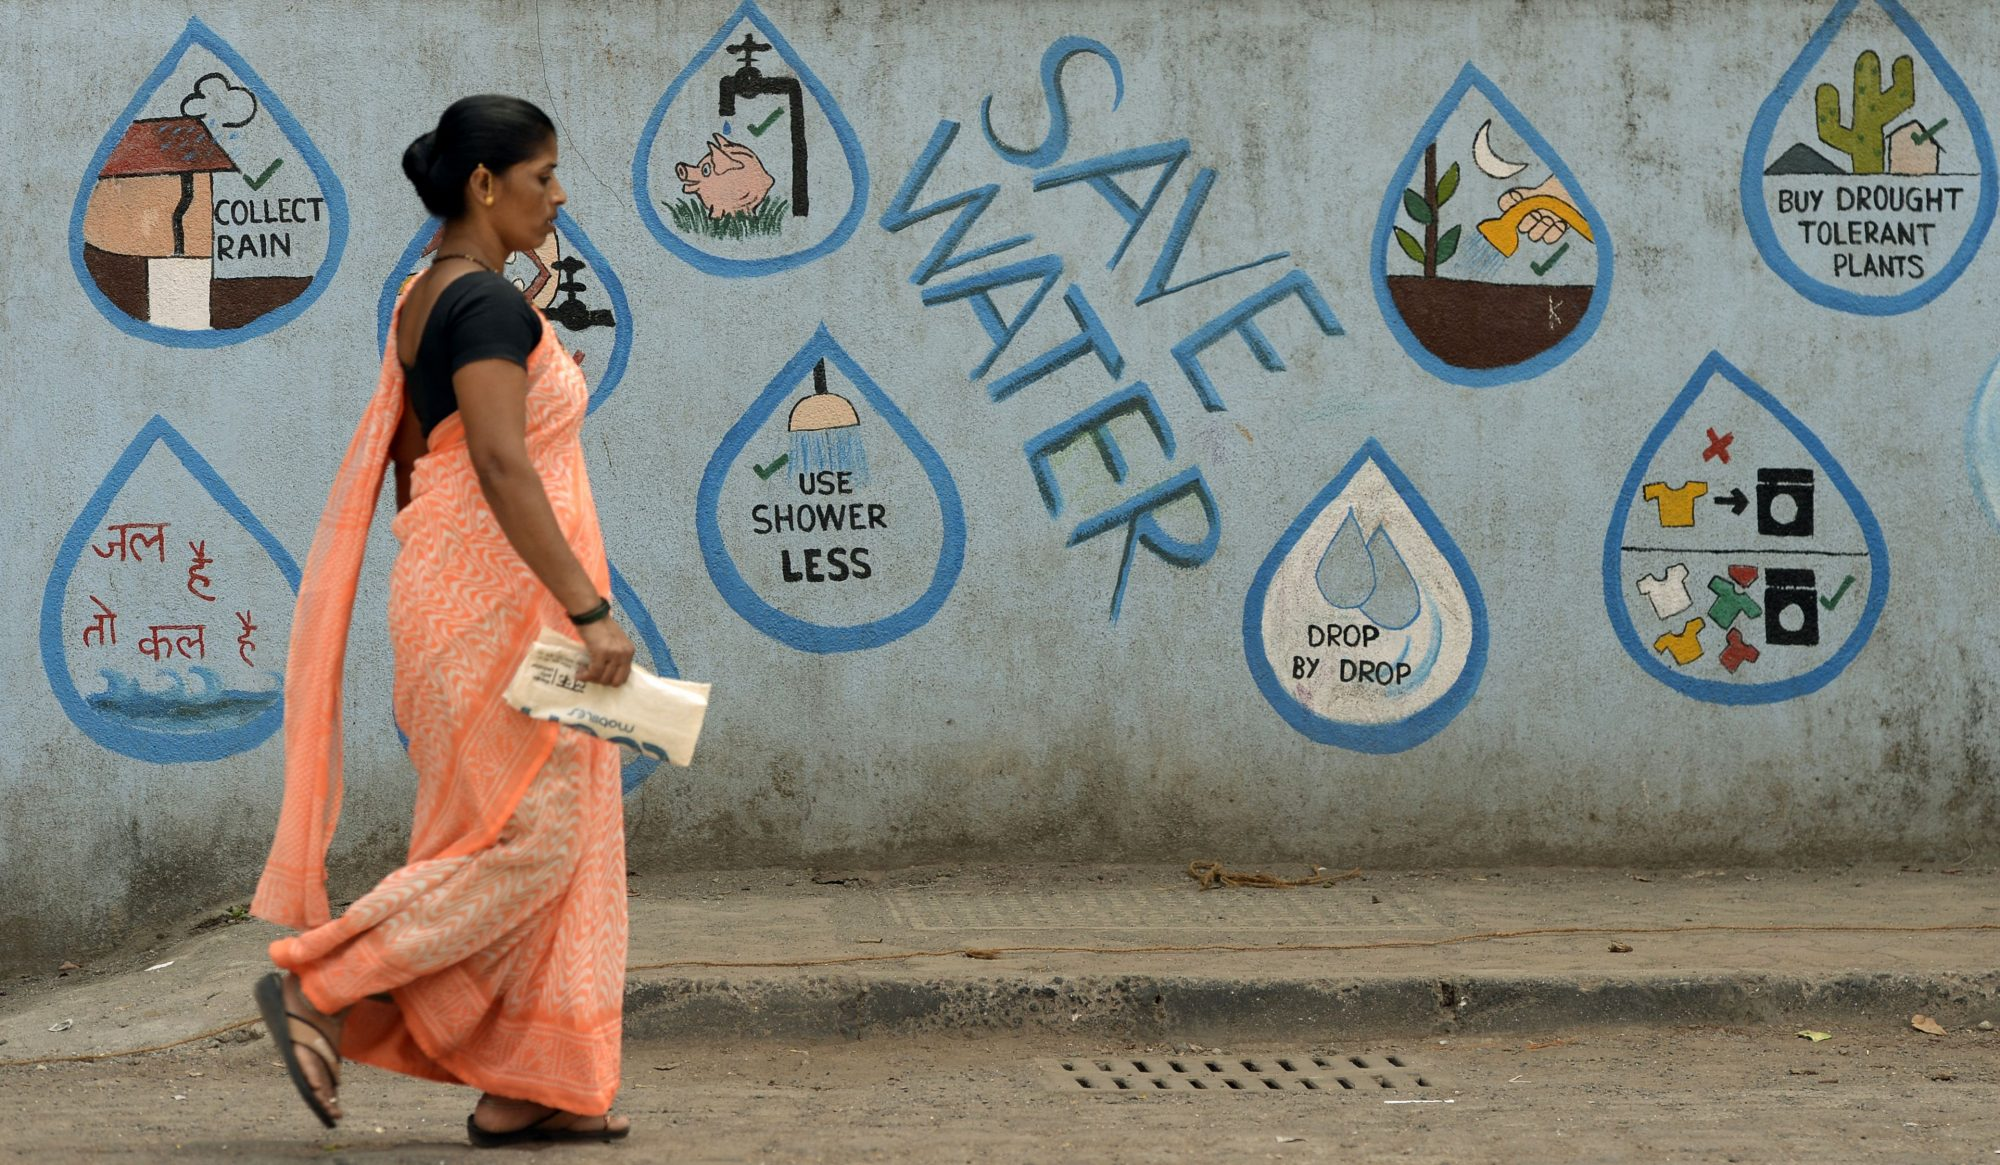 World Water Day 2017: 5 Things to Know About Water Consumption